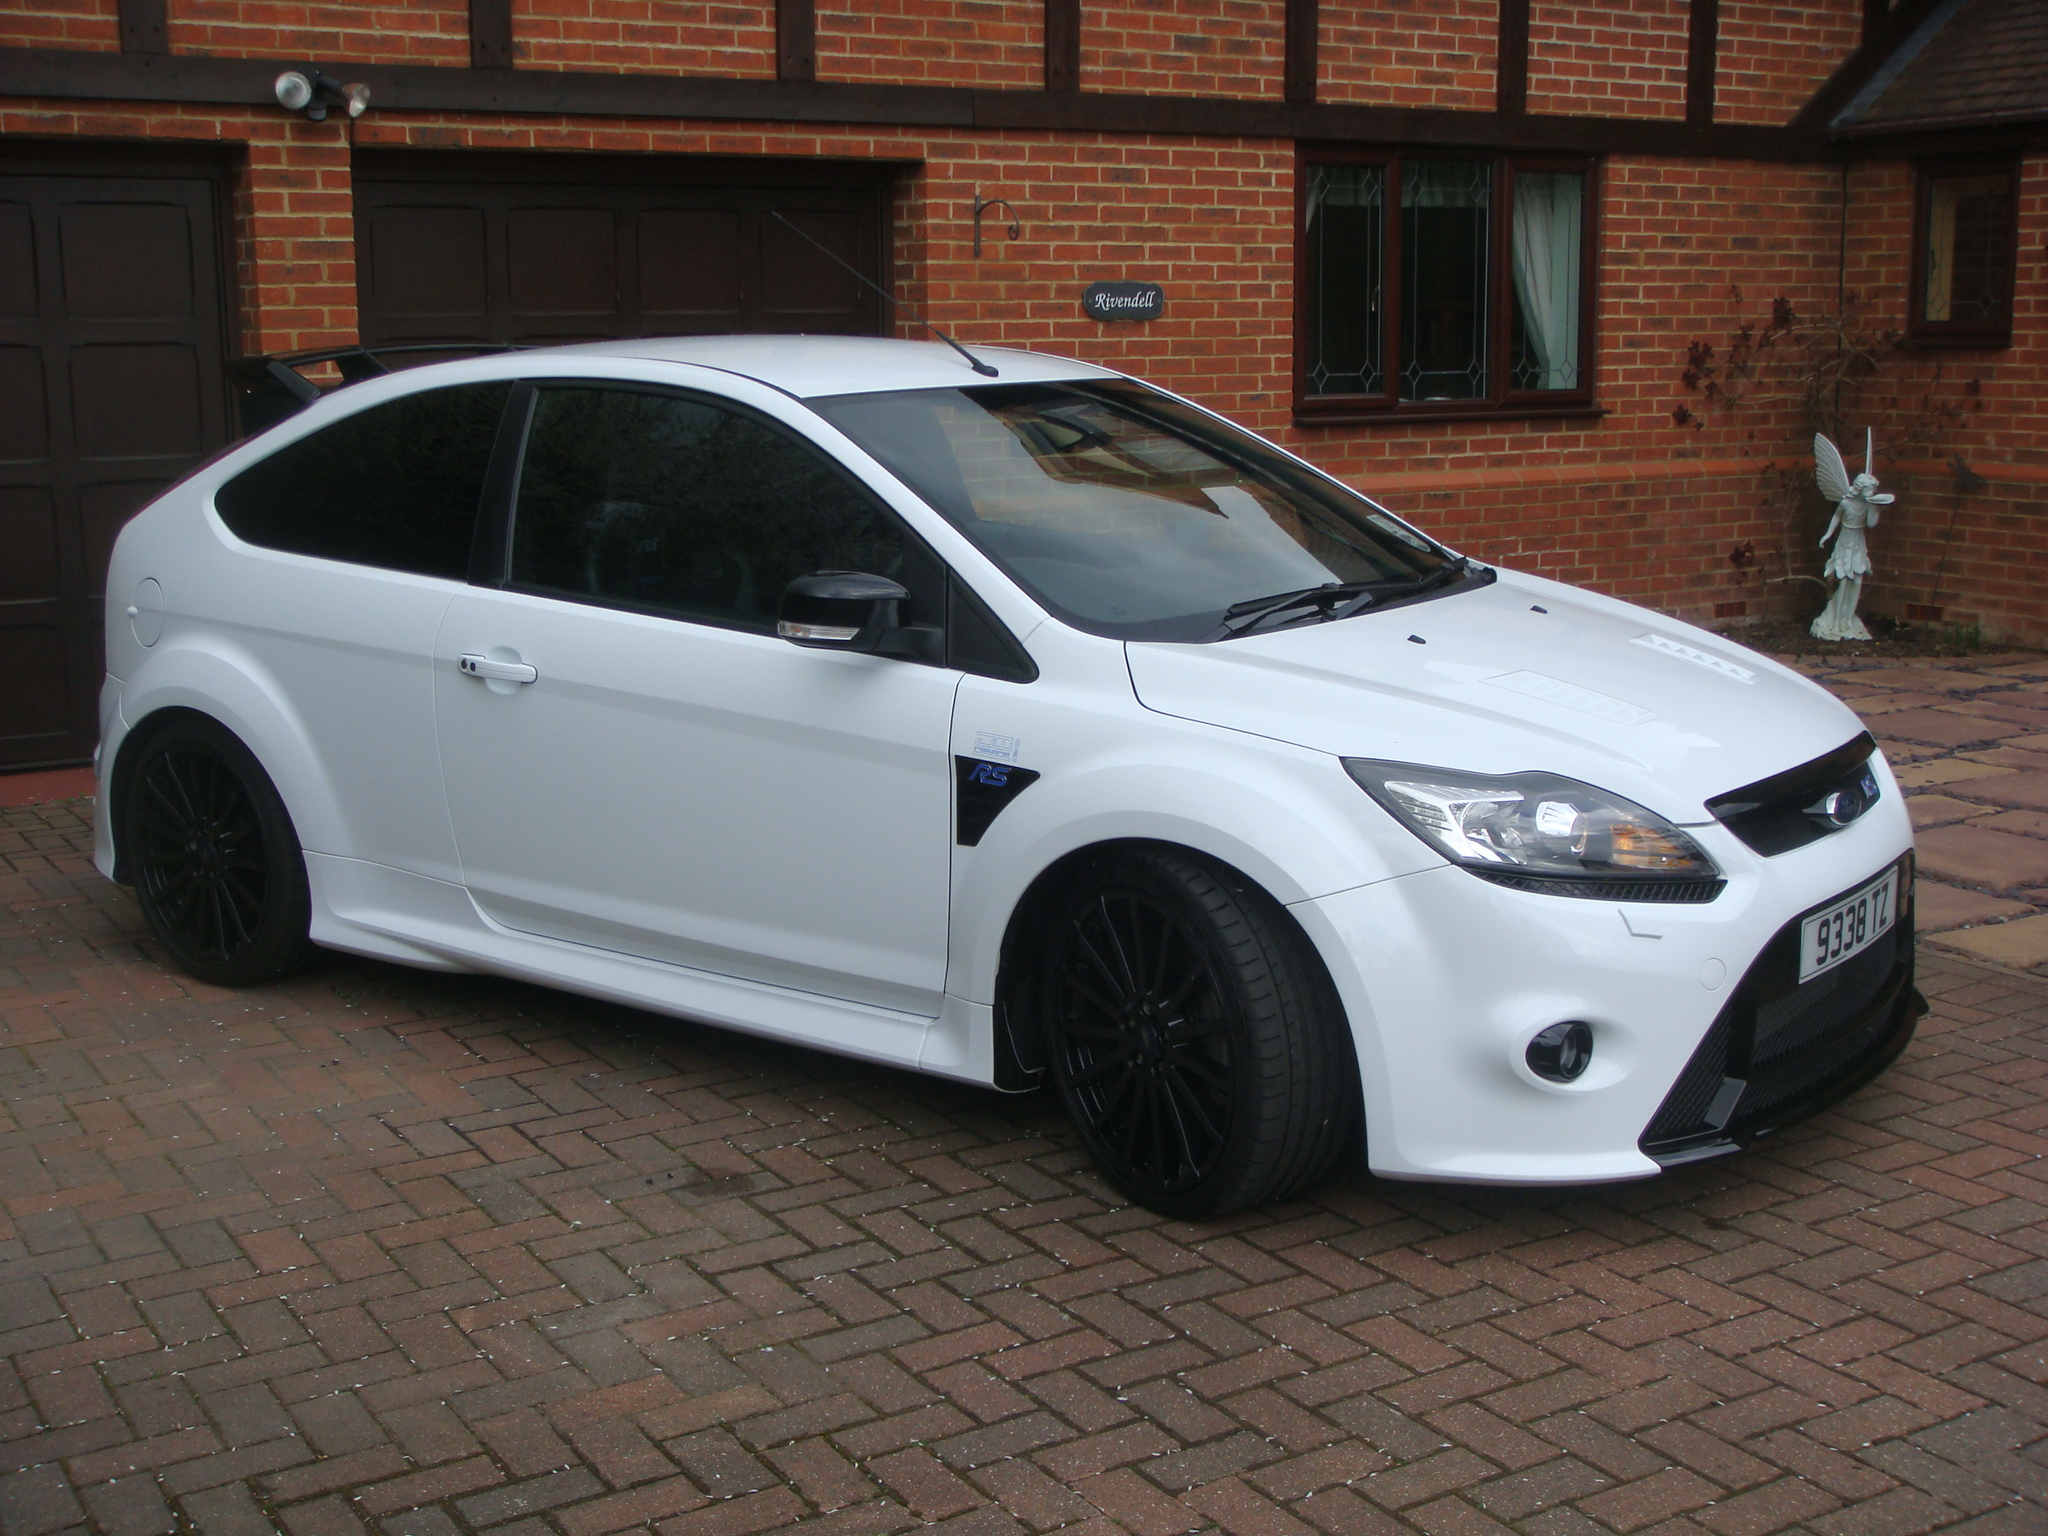 The Jwr440 Focus Rs Mk2 Our Promo Car Ford 2002 Timming Engine Mechanical Problem